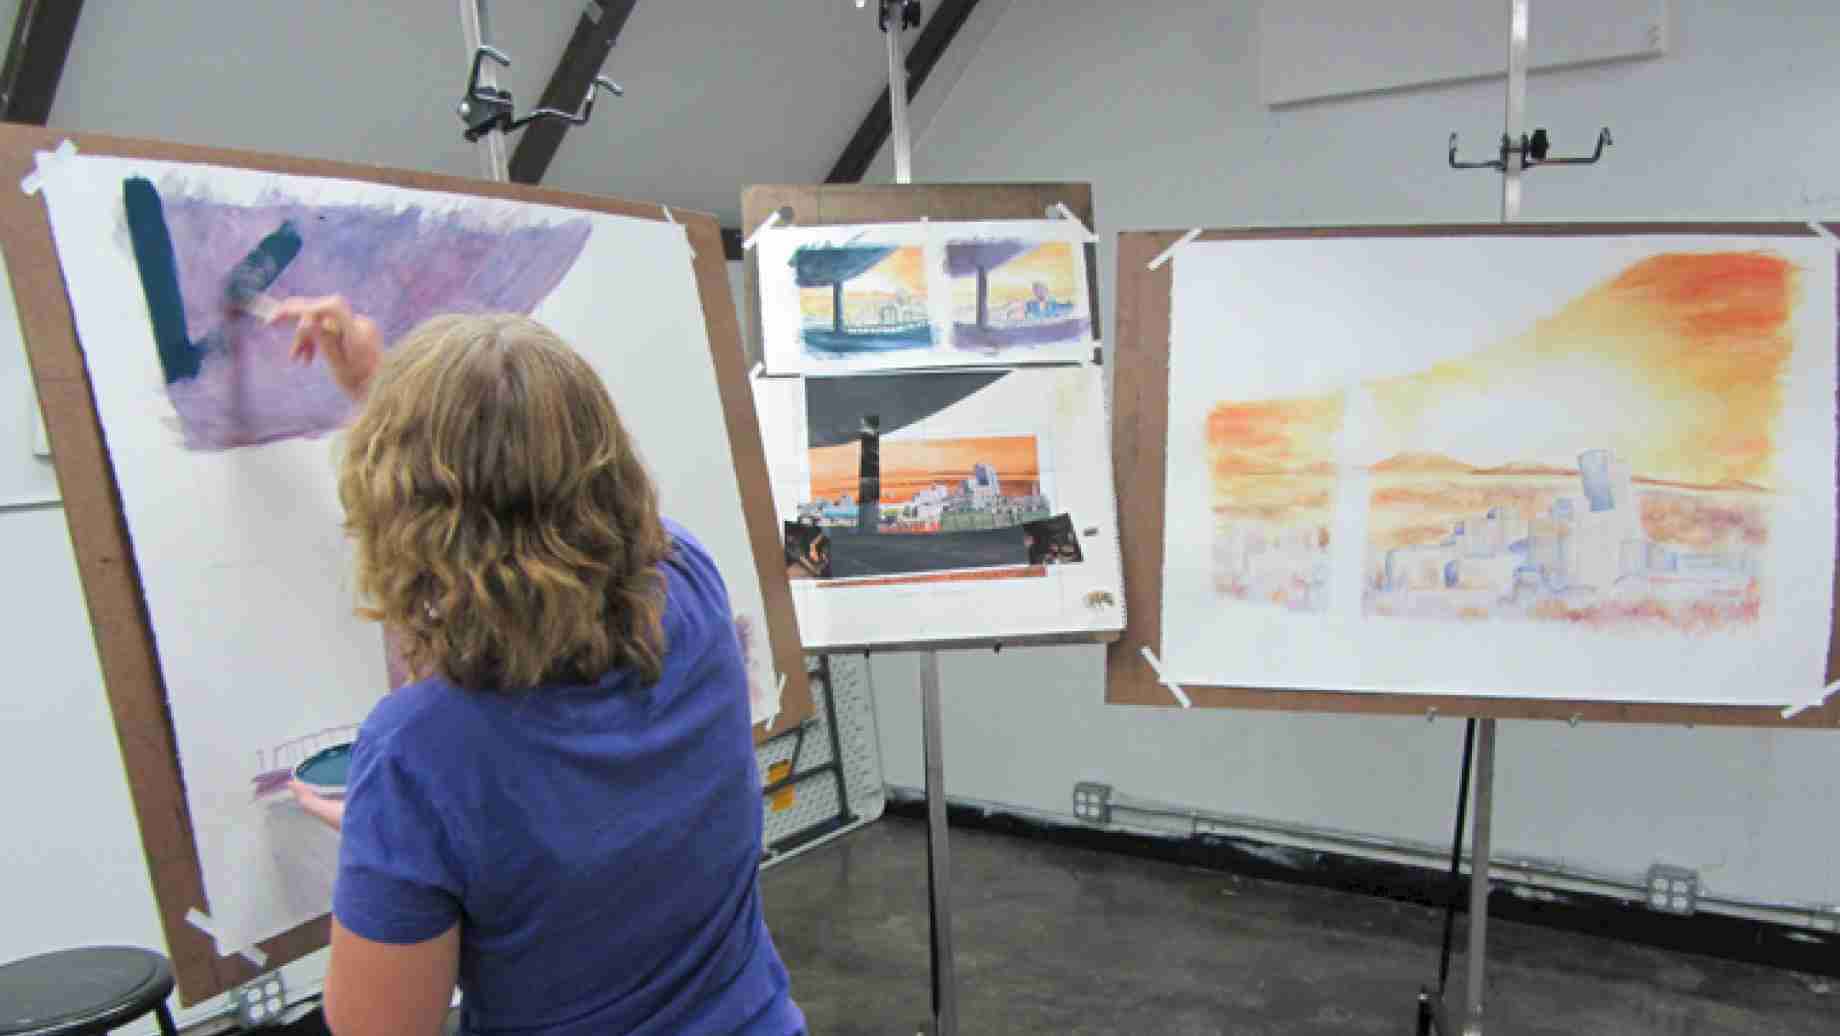 Color Drawing: Through preliminary sketches and long-term preparations, students actualize ambitious goals